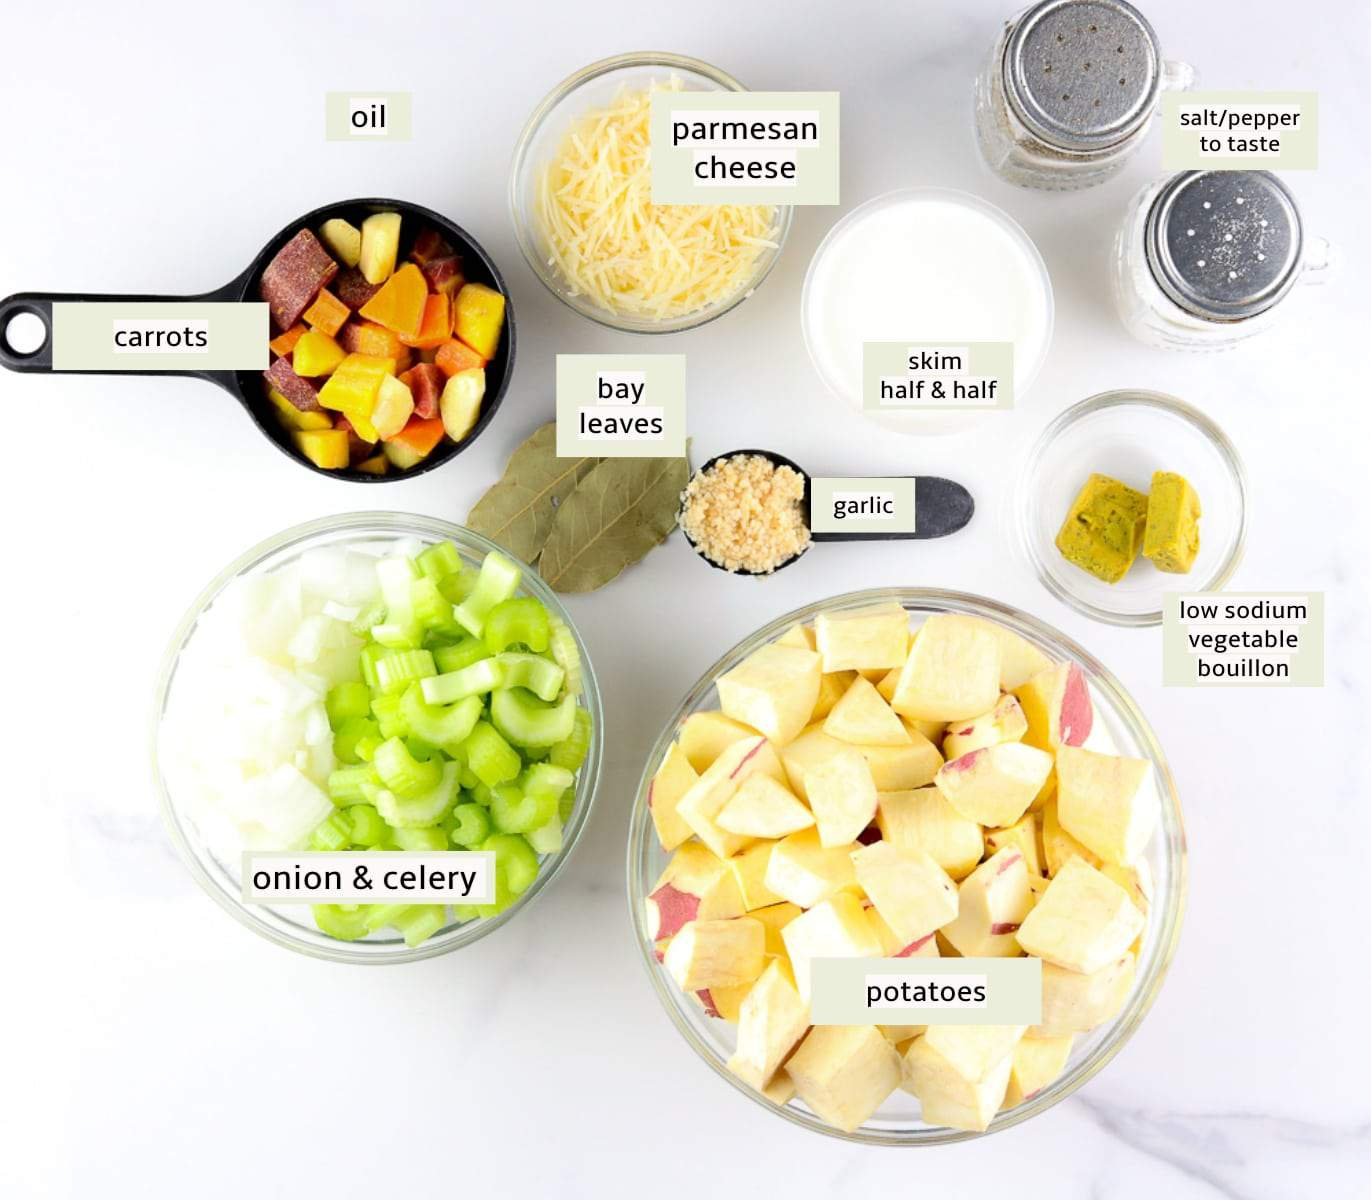 Ingredient image of preparation for potato soup.